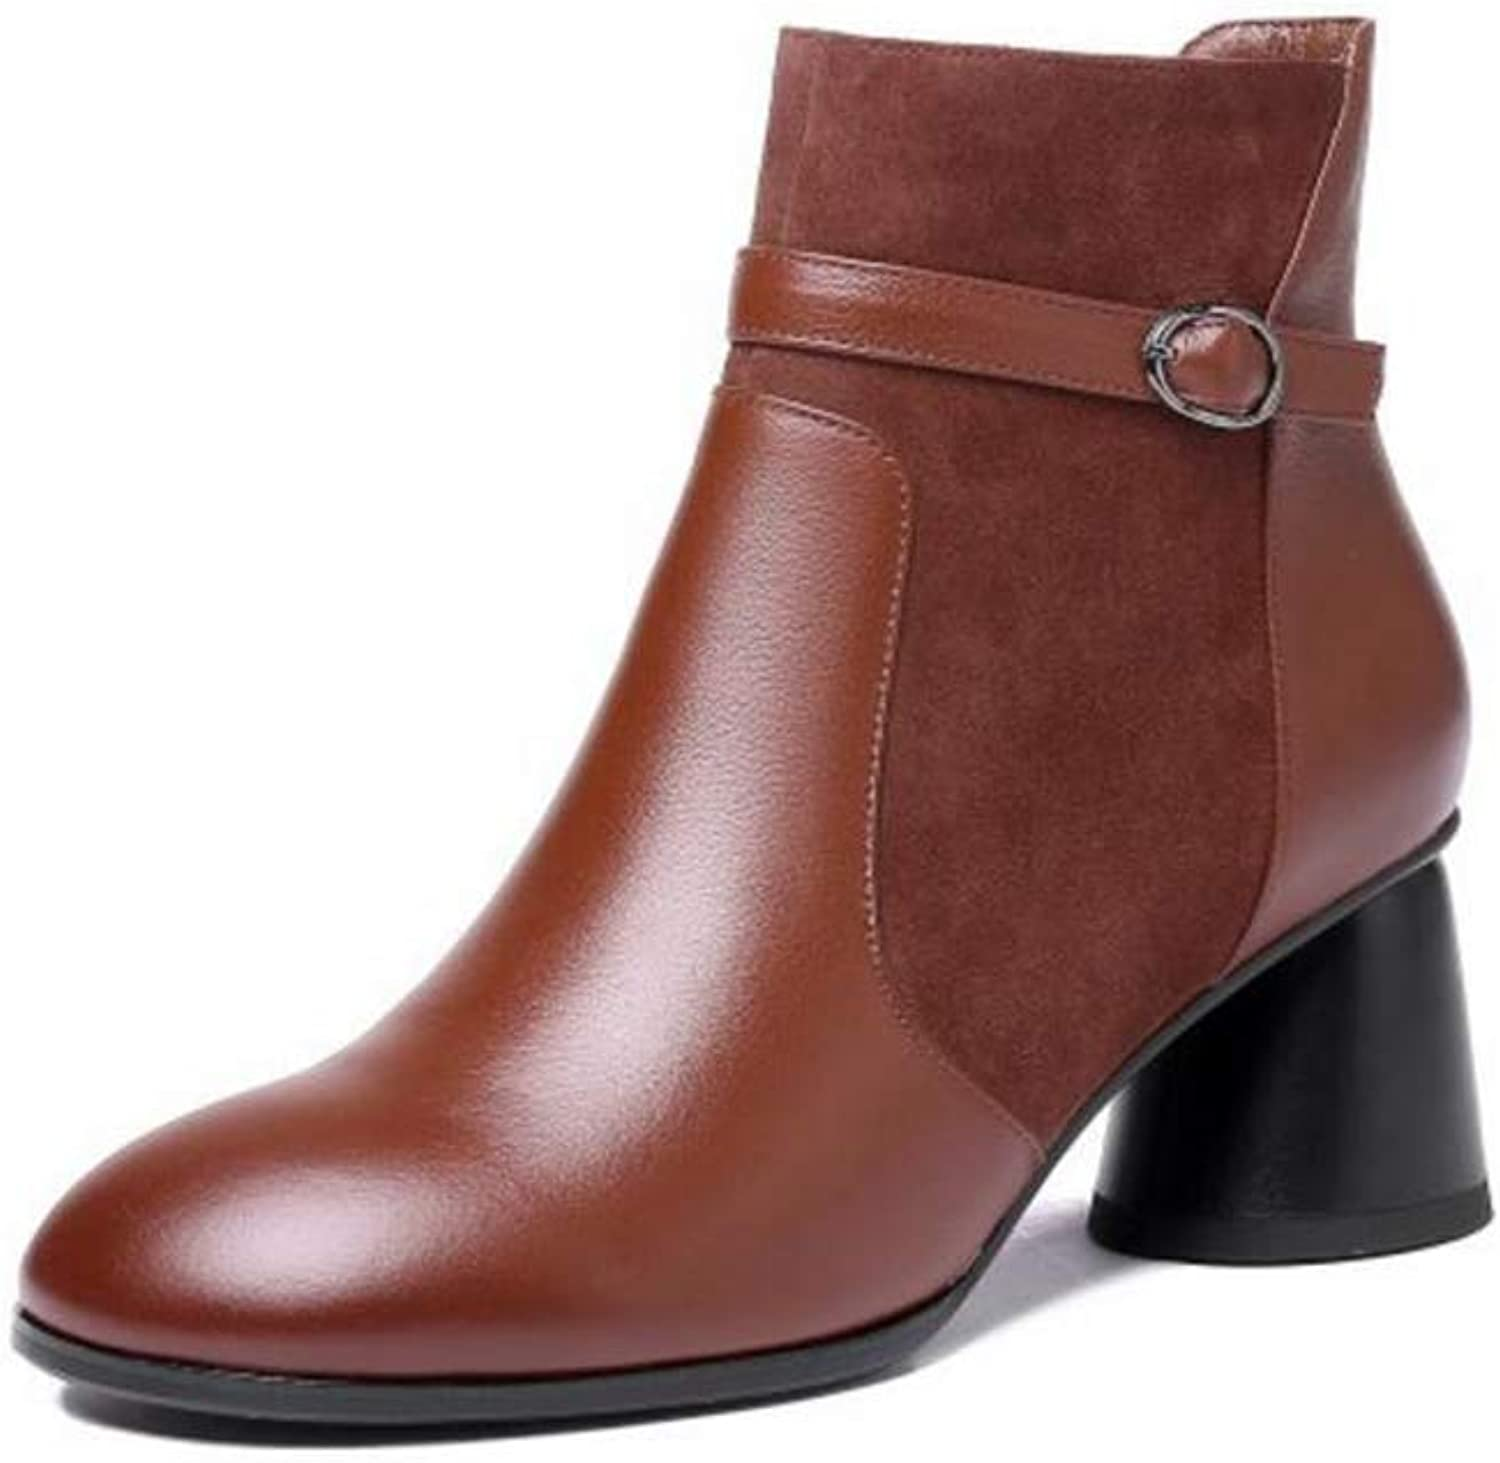 Women's shoes, Woman Autumn Winte Leather Booties, Female Booties Fashion Boots Retro Ankle Boots (color   Brown, Size   41)